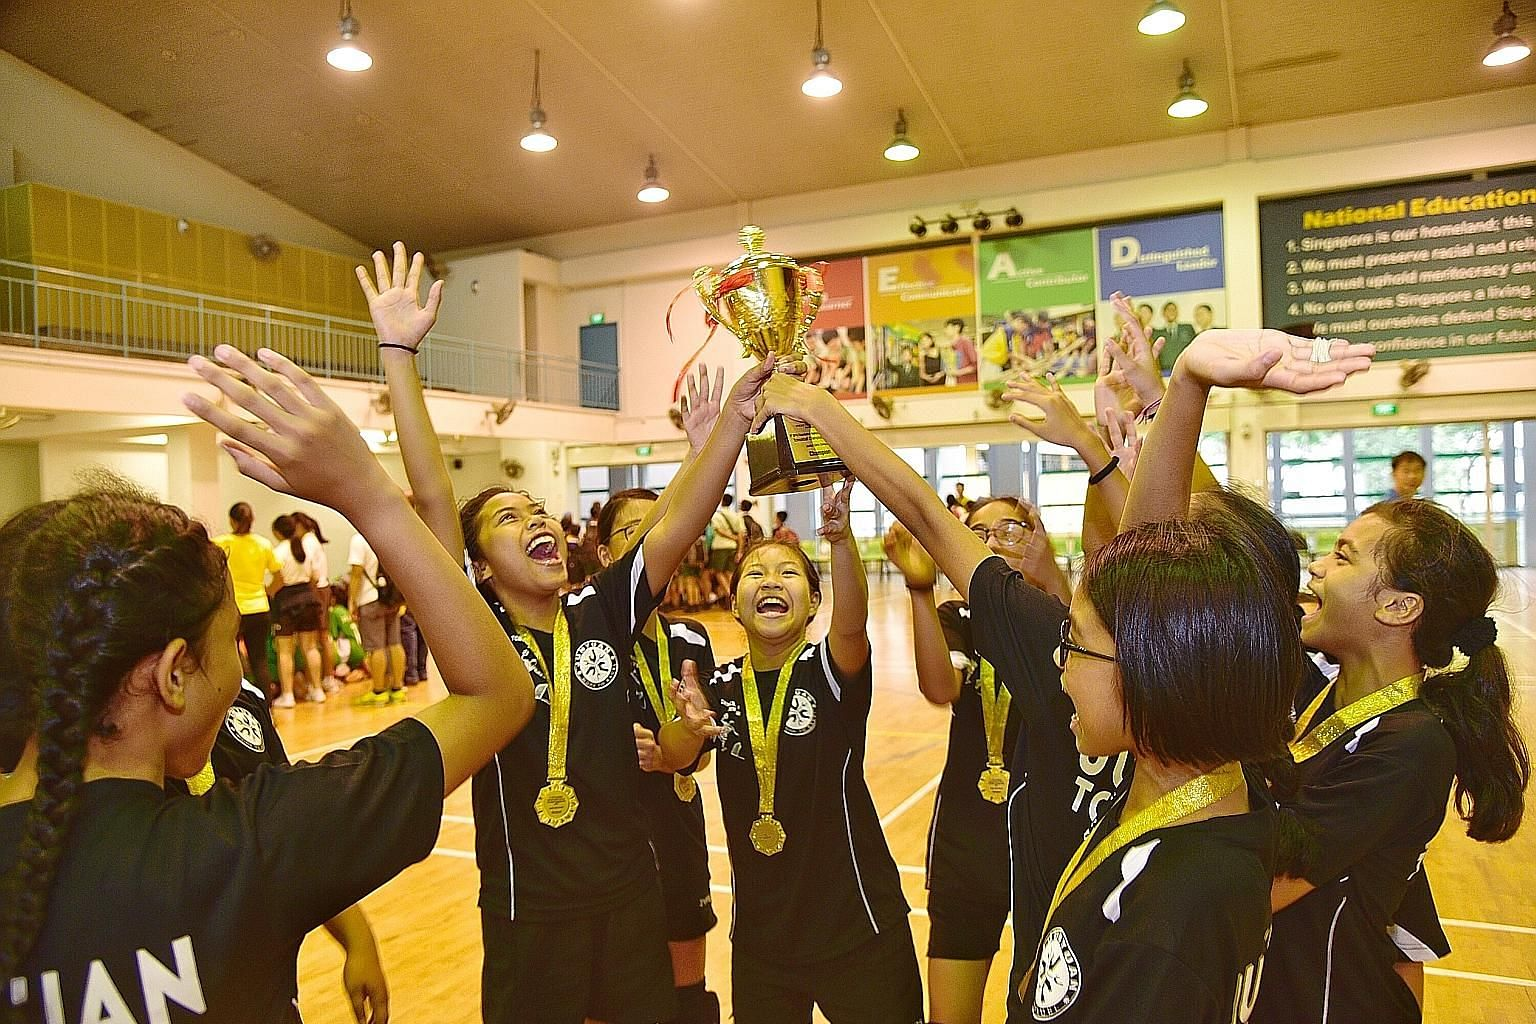 Junyuan Primary School players celebrate after winning the girls' title in the SPH Foundation National Primary Schools Tchoukball Championships yesterday. They recorded six wins and two draws in the round-robin format to emerge champions. The school